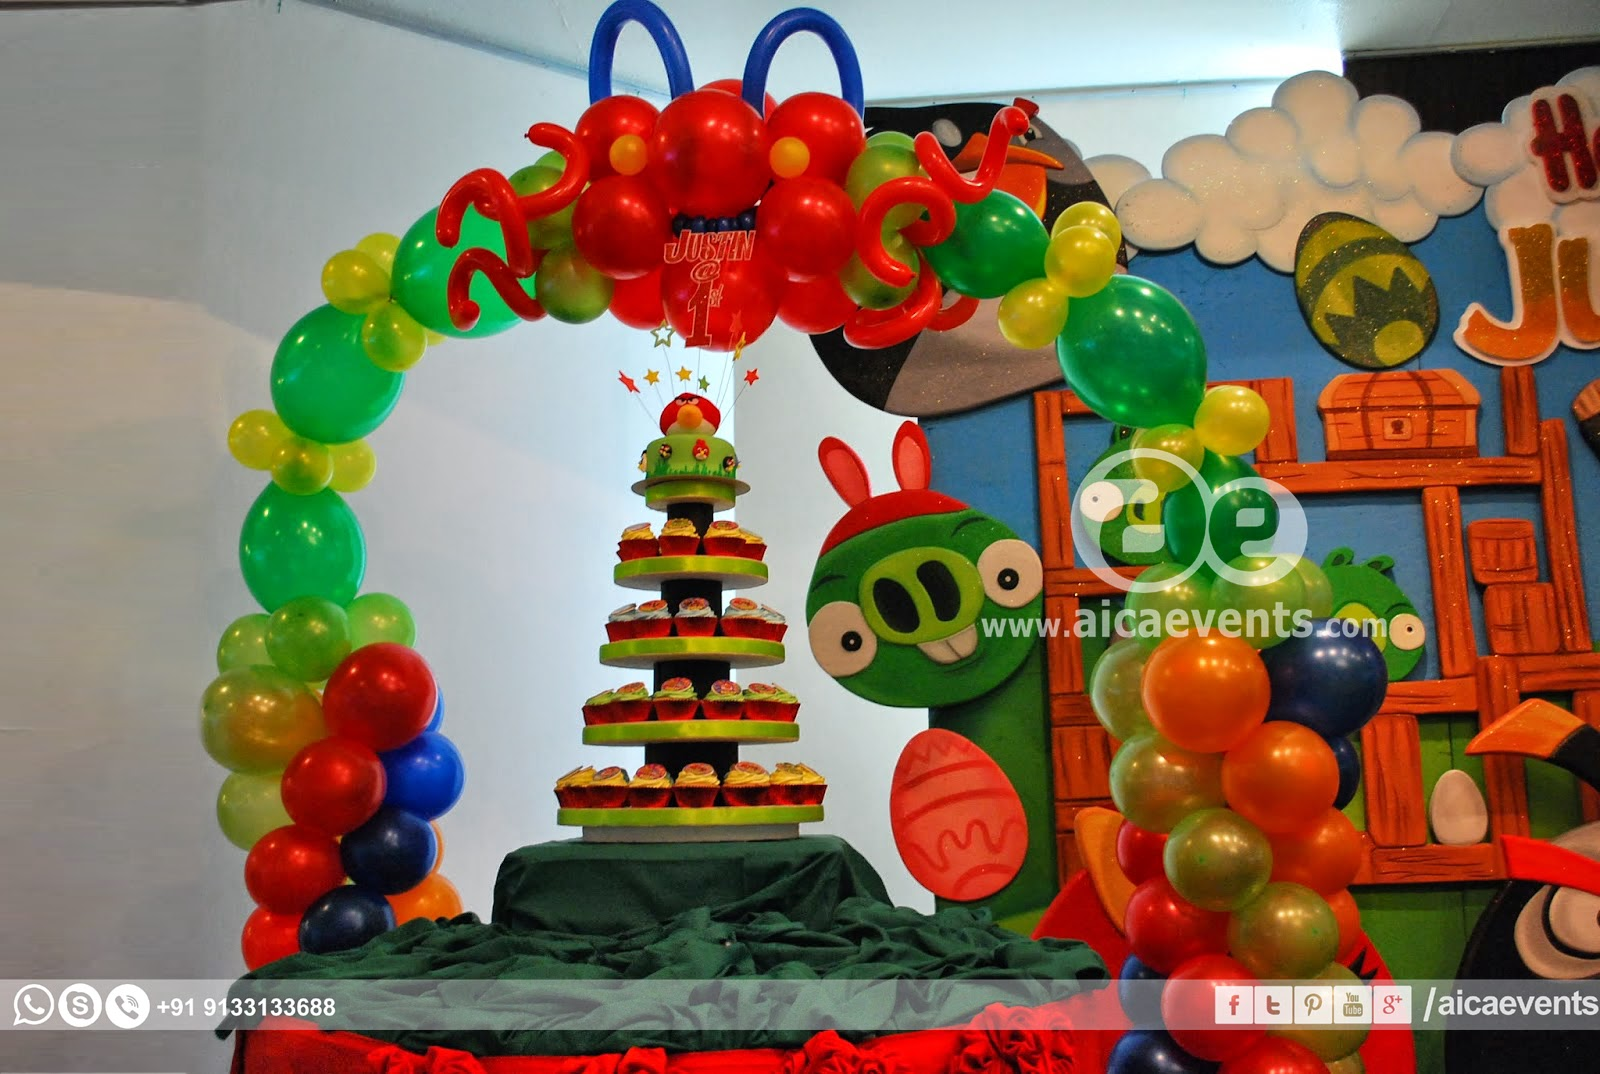 Aicaevents angry bird theme decors for birthday parties for Angry bird decoration ideas